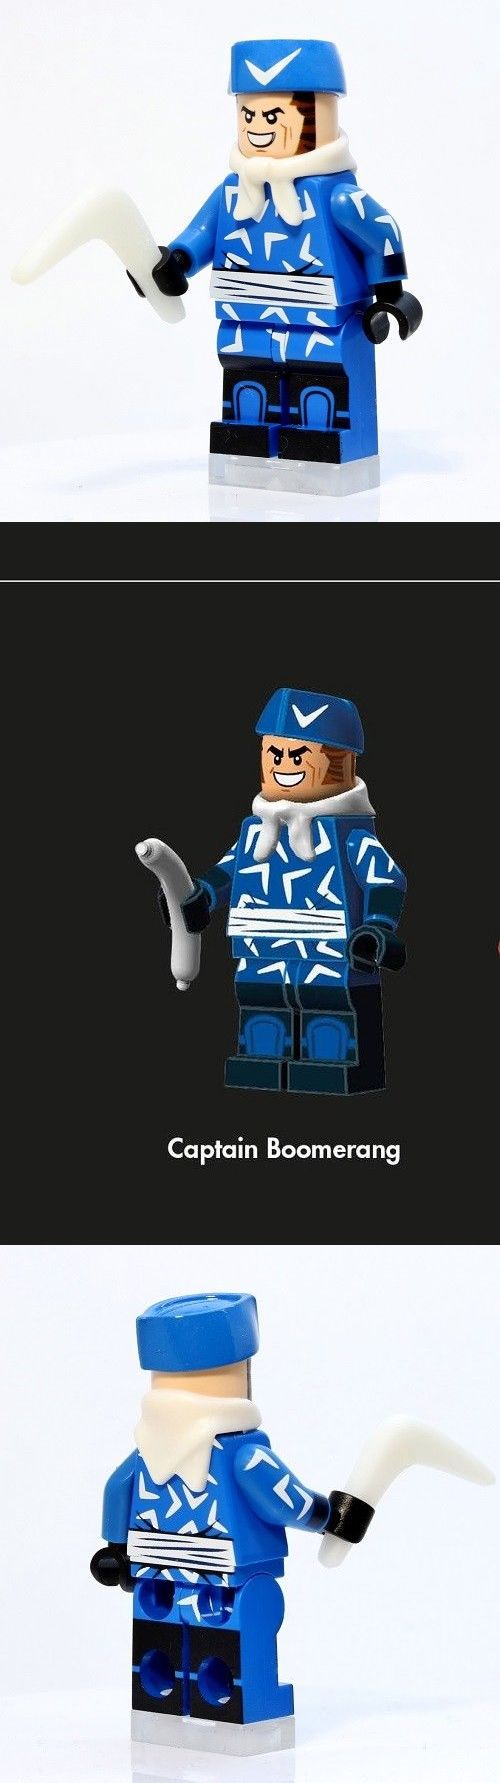 Mixed Lots 183451: A1322 Lego Custom Printed Inspired Captain Boomerang Minifig Batman Lego Movie -> BUY IT NOW ONLY: $31.88 on eBay!